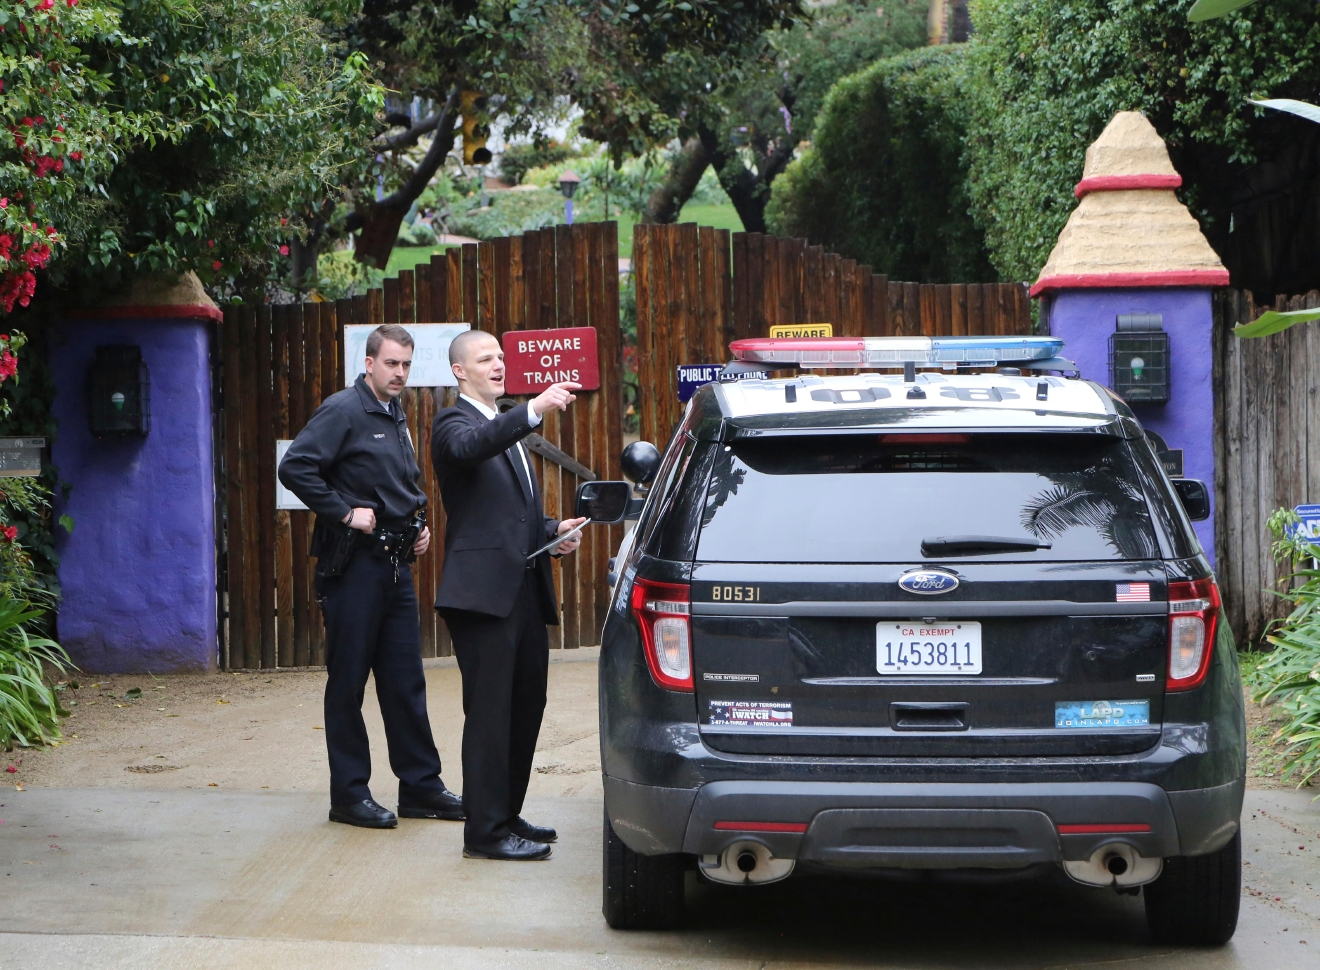 Los Angeles police officers and private security appear outside the homes of Debbie Reynolds and her daughter Carrie Fisher in Los Angeles Thursday, Jan. 5, 2017. Reynolds died Dec. 28 at the age of 84, a day after her daughter died at the age of 60. (AP Photo/Reed Saxon)